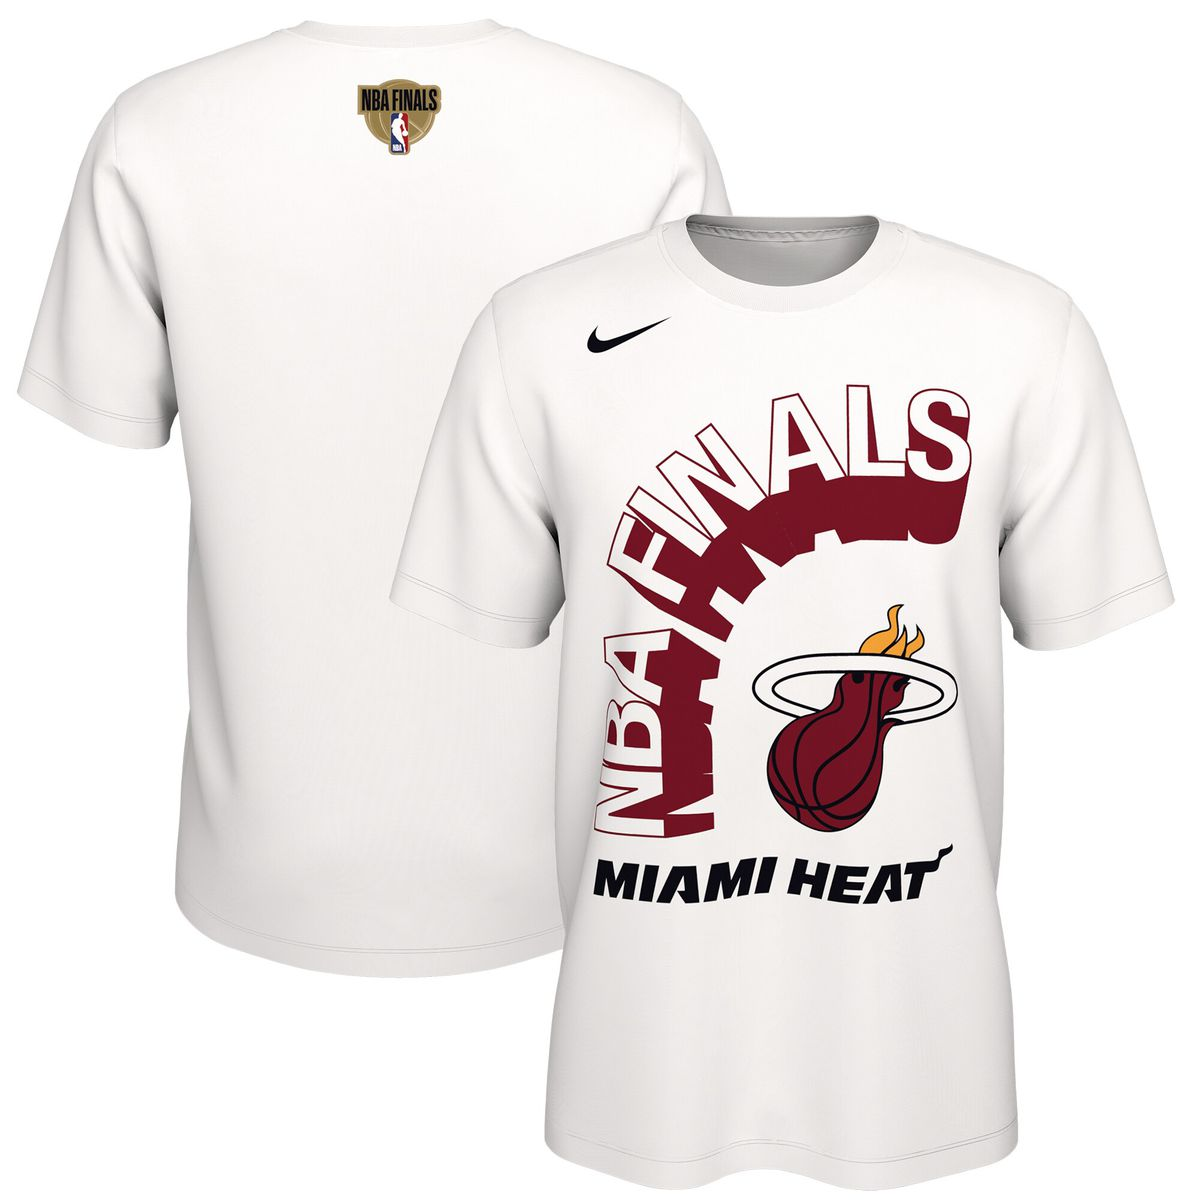 Nba Finals Bound Celebrate With Heat Eastern Conference Champs Merch Hot Hot Hoops